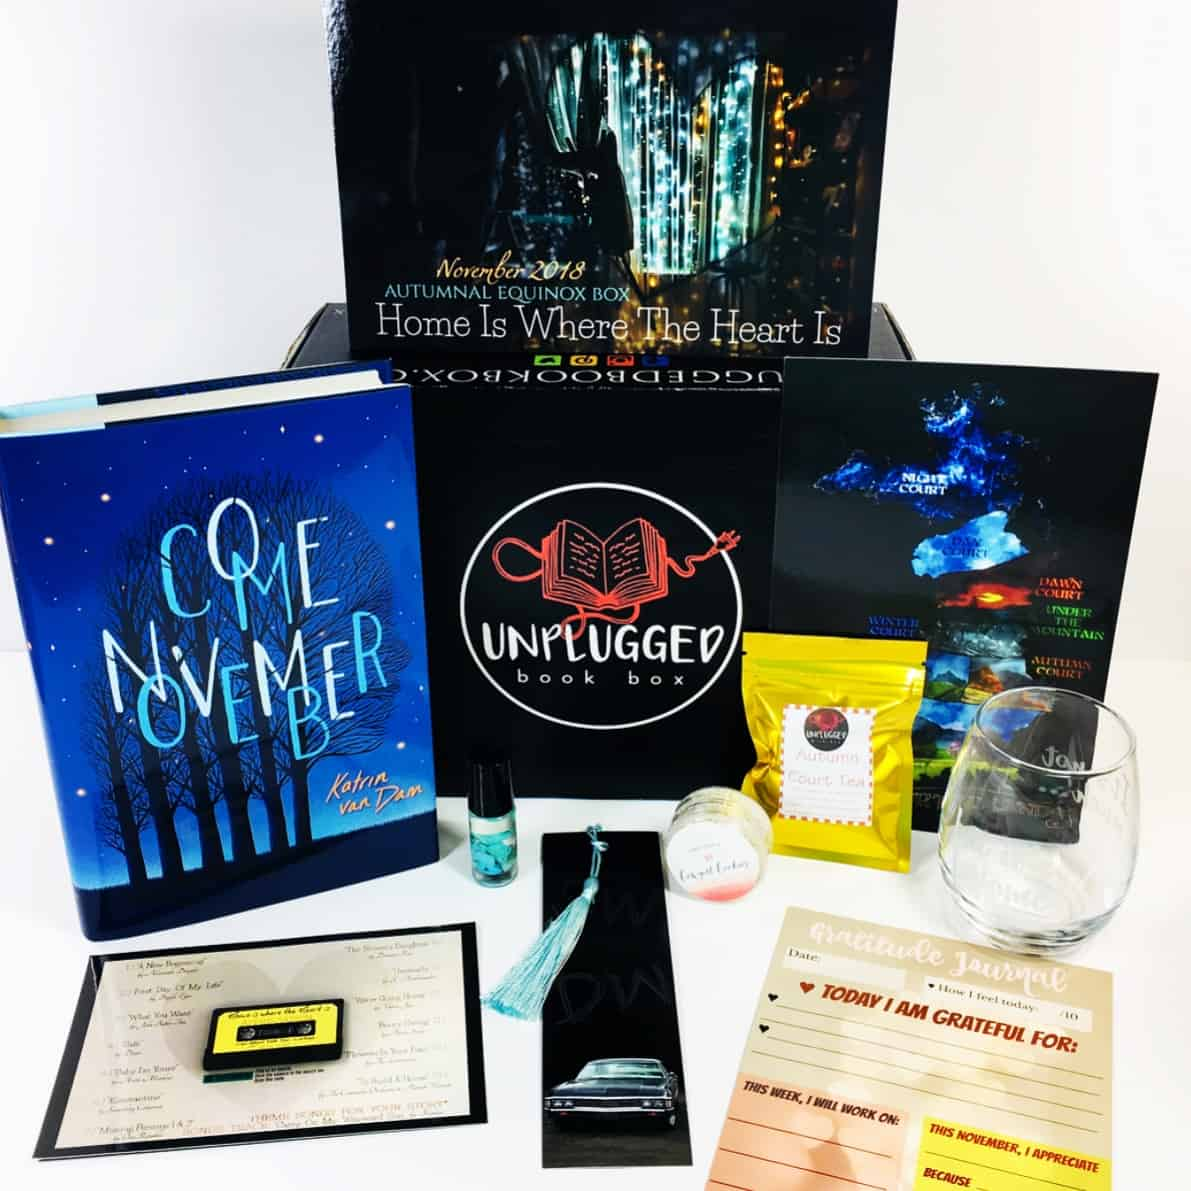 Unplugged Book Box November 2018 Subscription Box Review